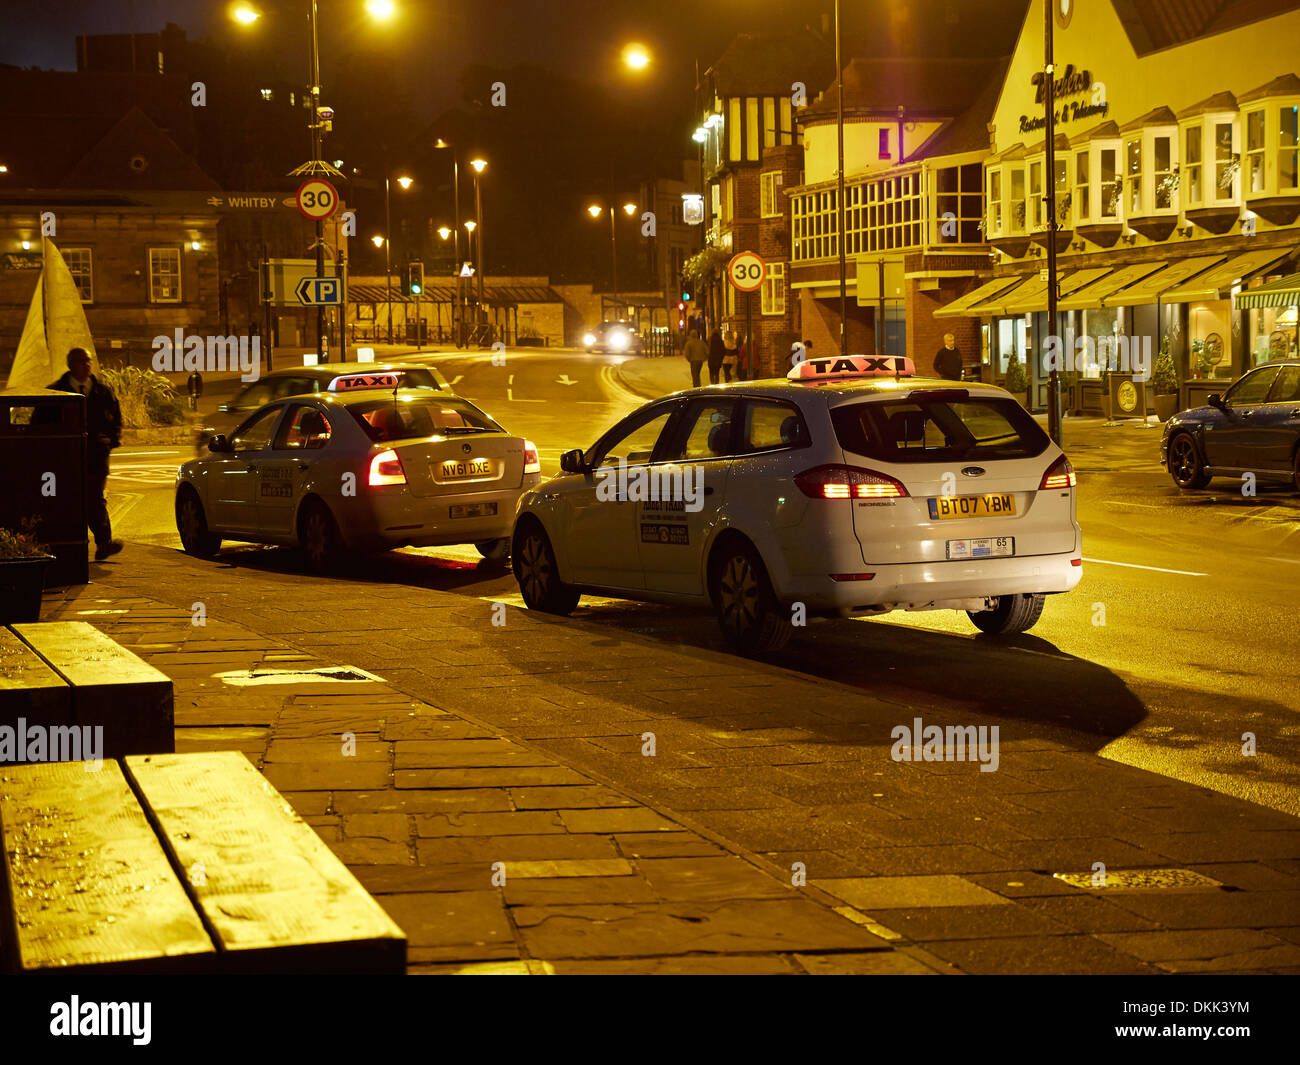 Taxis wait for late night fares in Whitby, Yorkshire - Stock Image